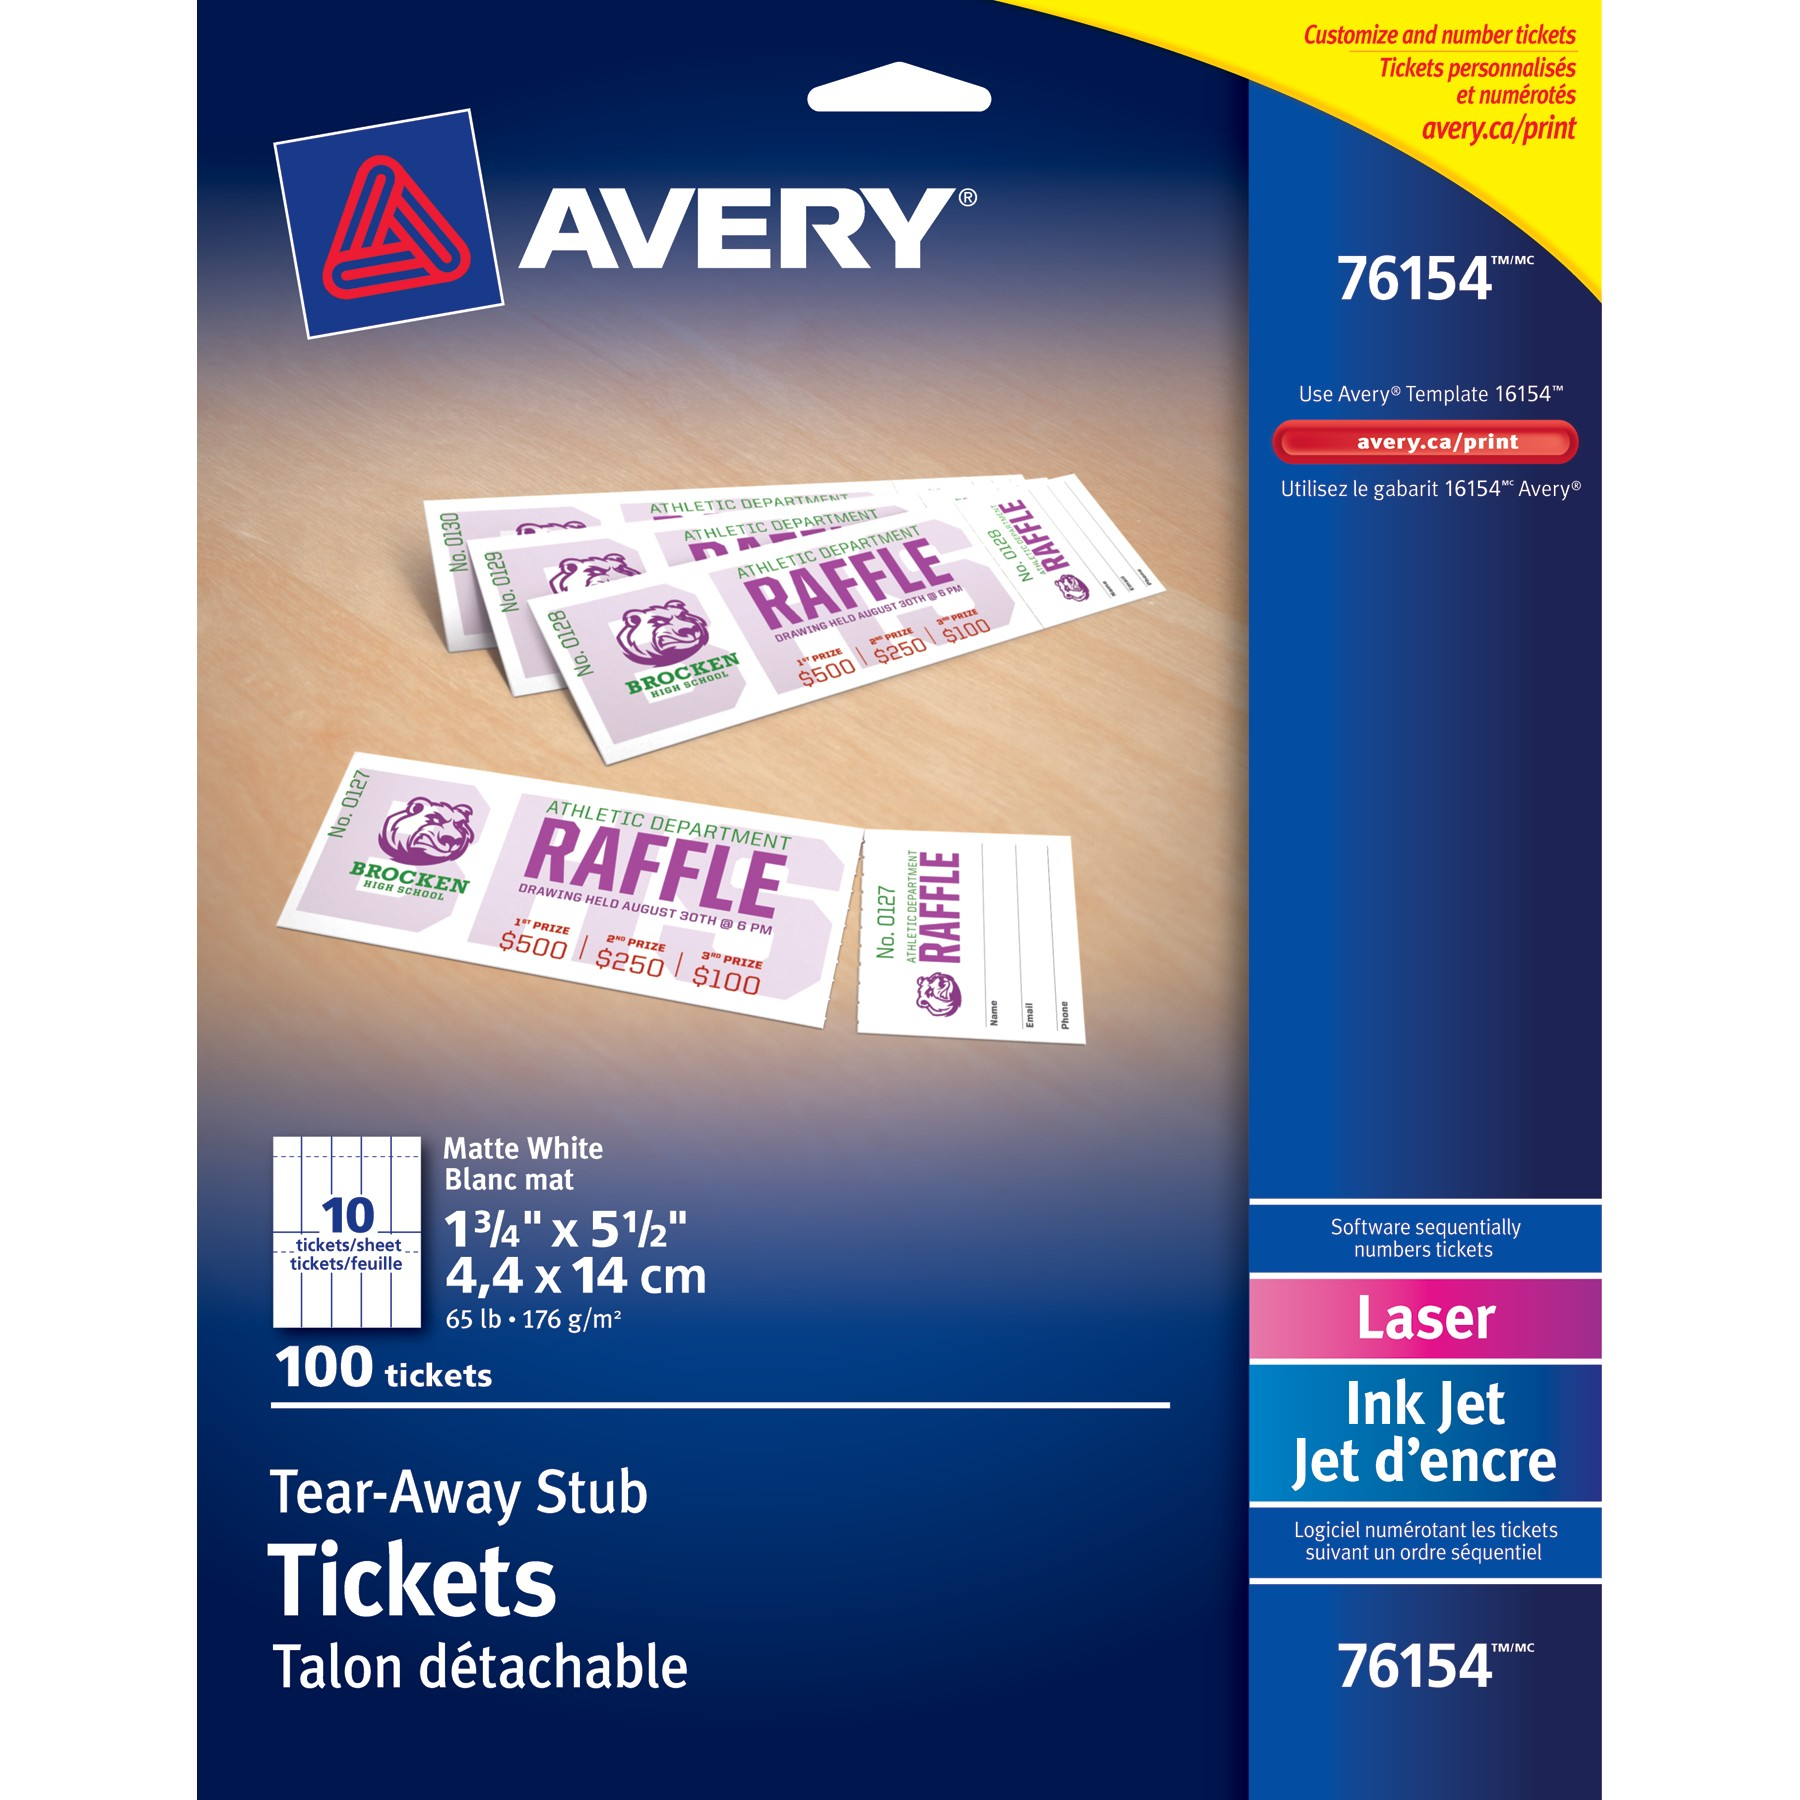 Doc500192 Ticket Examples Doc700401 Ticket Examples Ticket – Ticket Examples